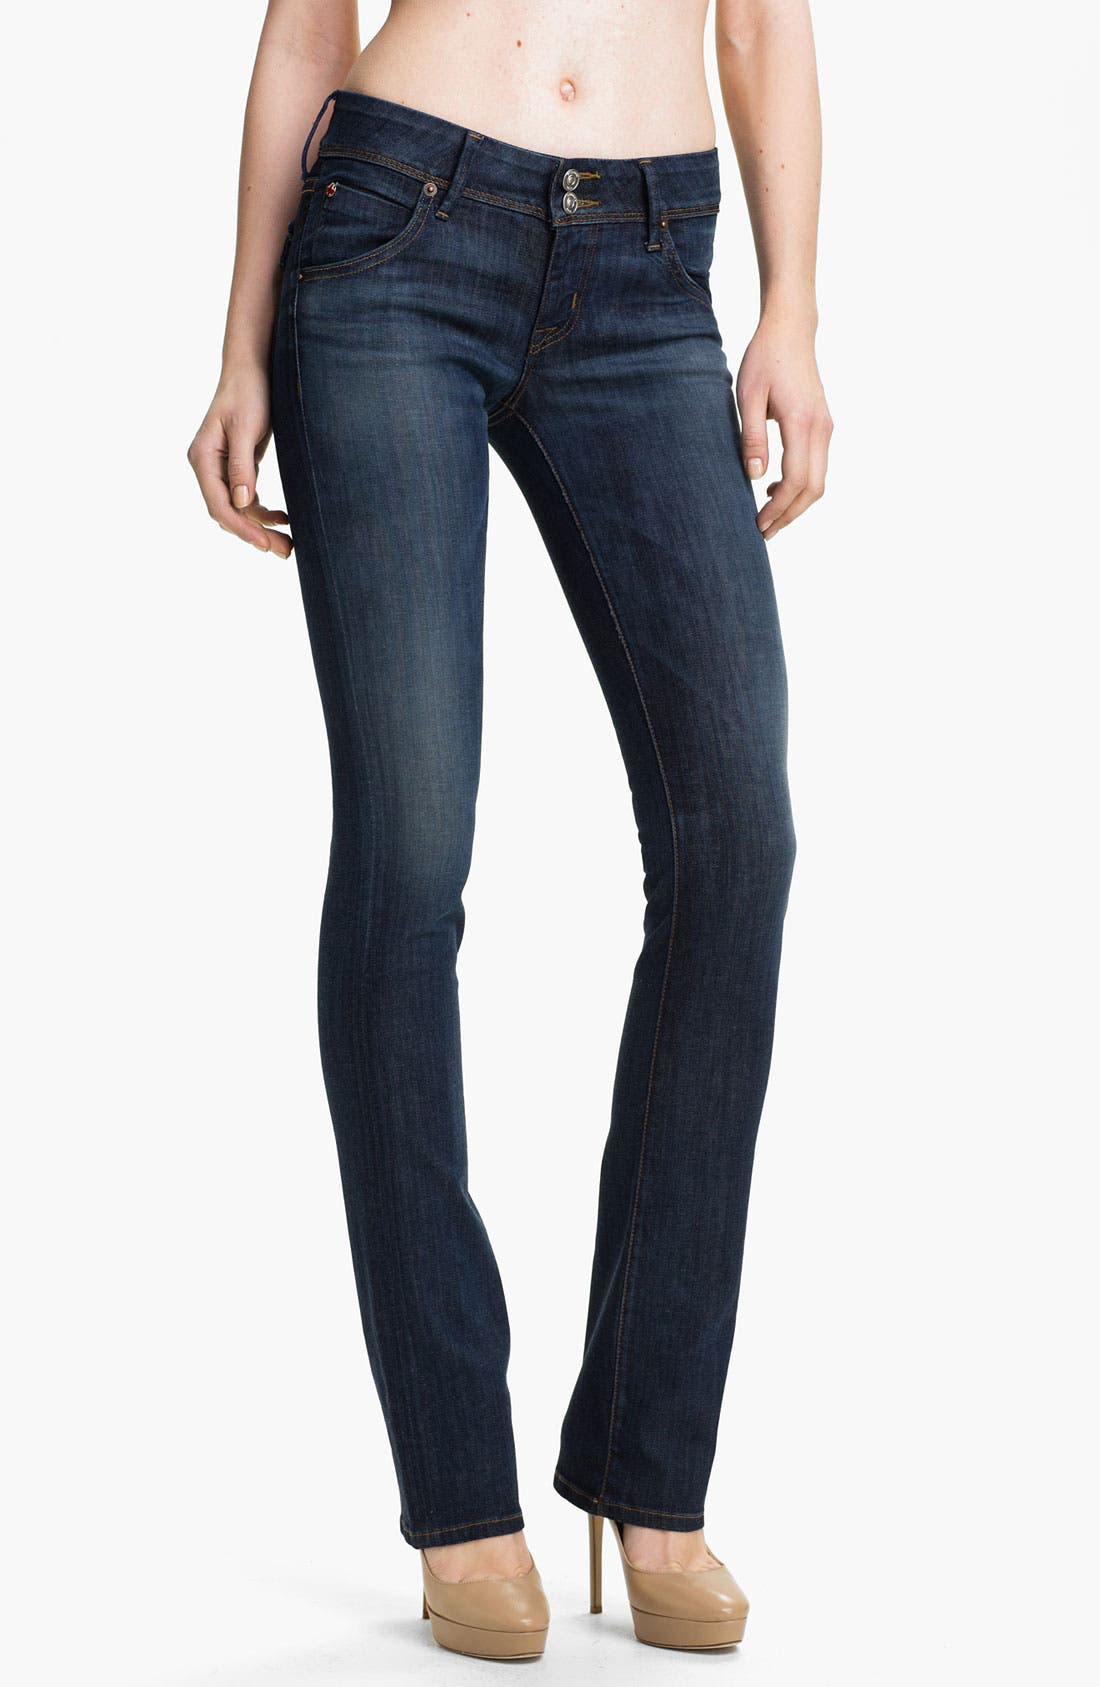 Alternate Image 1 Selected - Hudson Jeans 'Beth' Baby Bootcut Jeans (Adam)